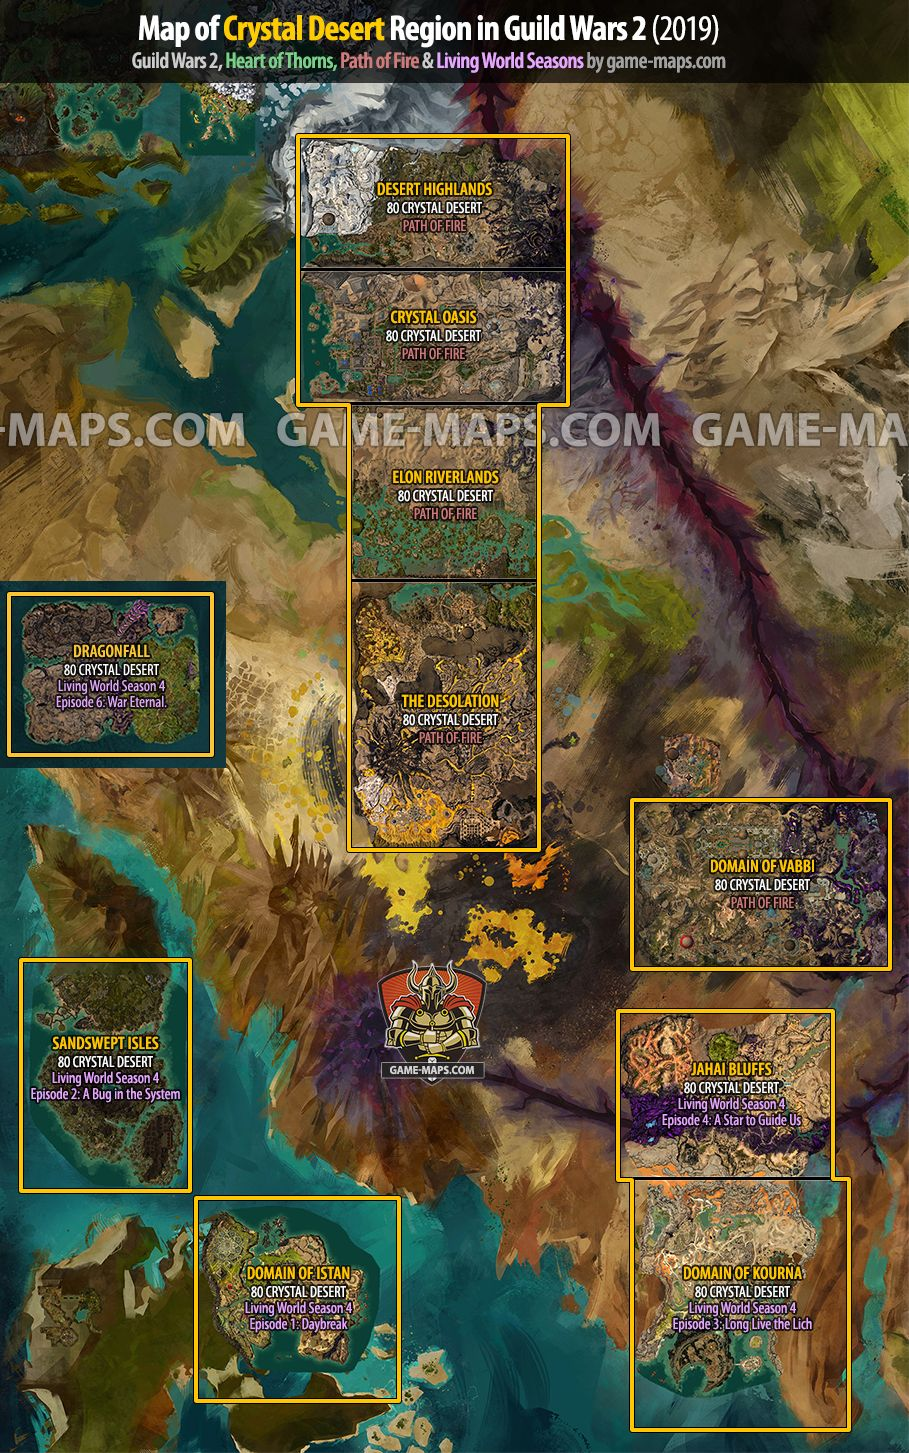 Gw2 Path Of Fire Mastery Points : mastery, points, Crystal, Oasis, (2019)-, Guild, Game-maps.com